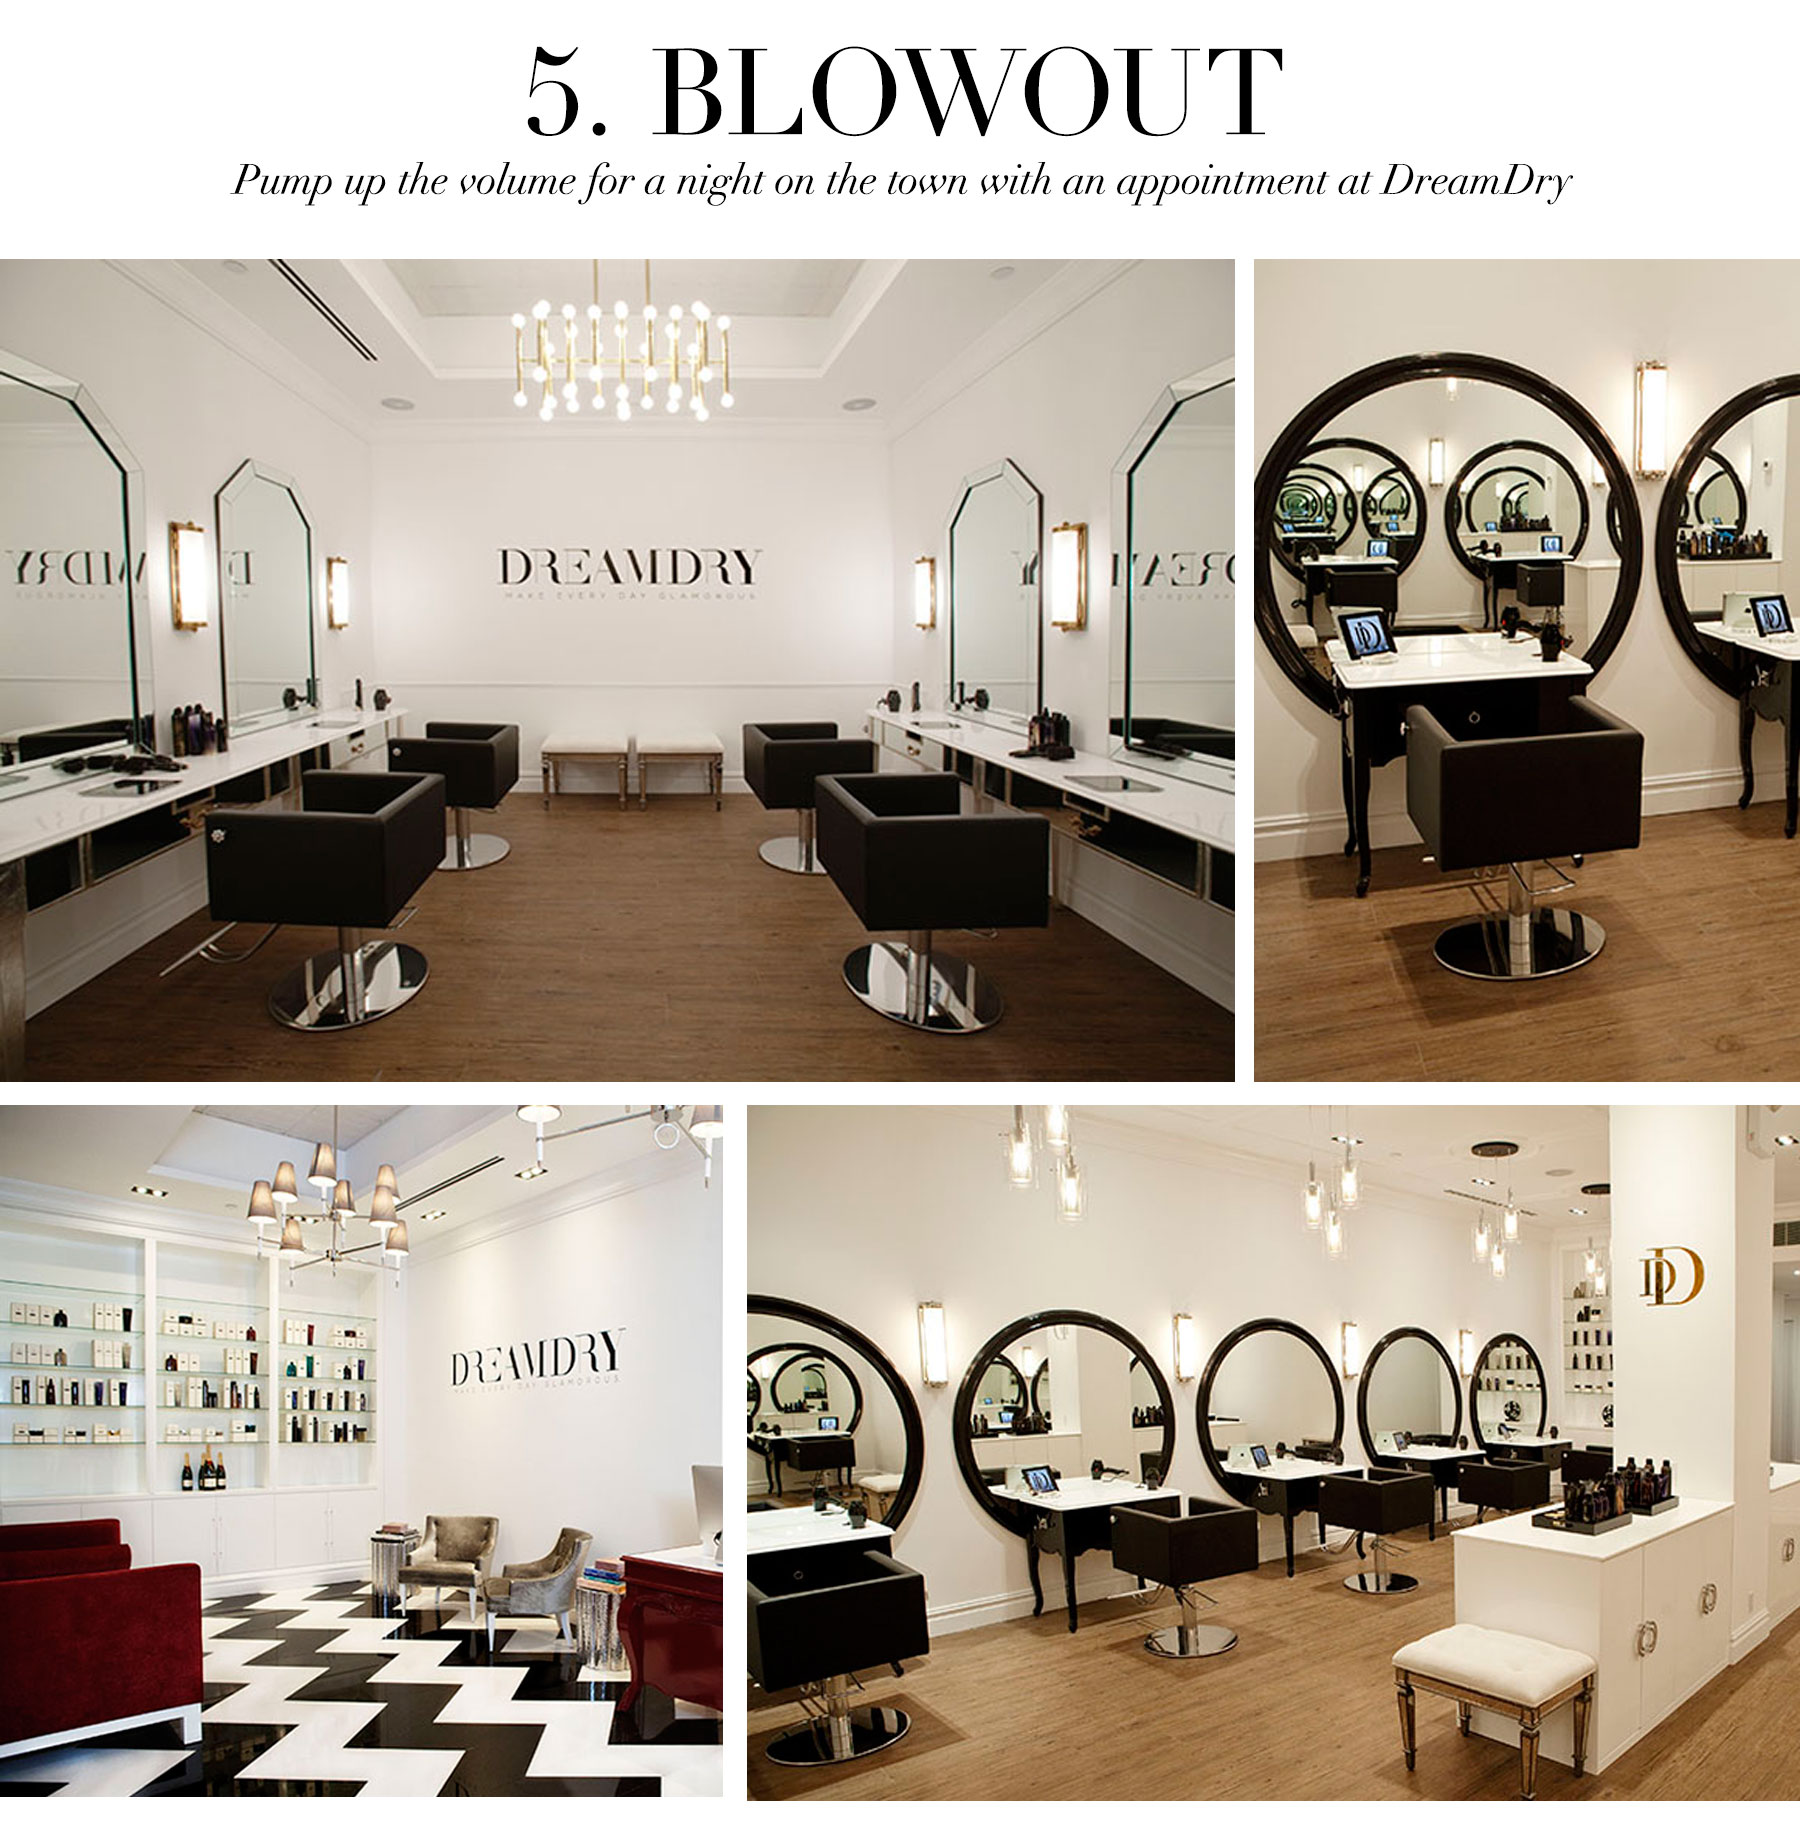 Ceci Johnson's Treat-Yourself Picks - Blowout - Pump up the volume for a night on the town with an appointment at Dream Dry